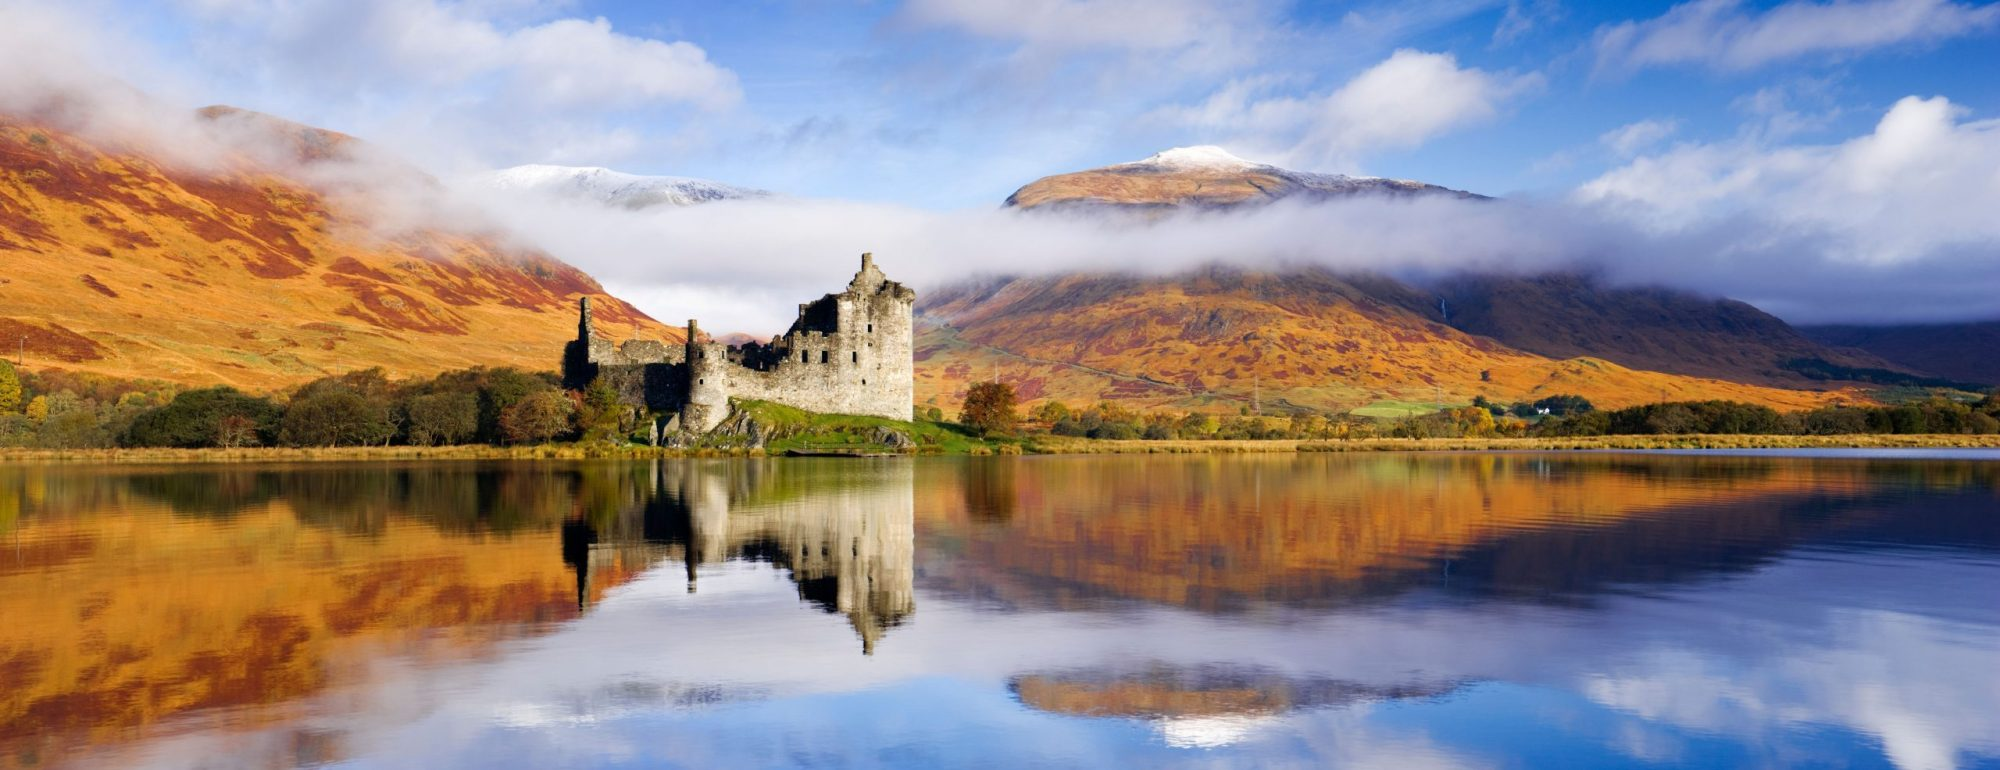 Kilchurn Purchased From Alamy Scaled Aspect Ratio X